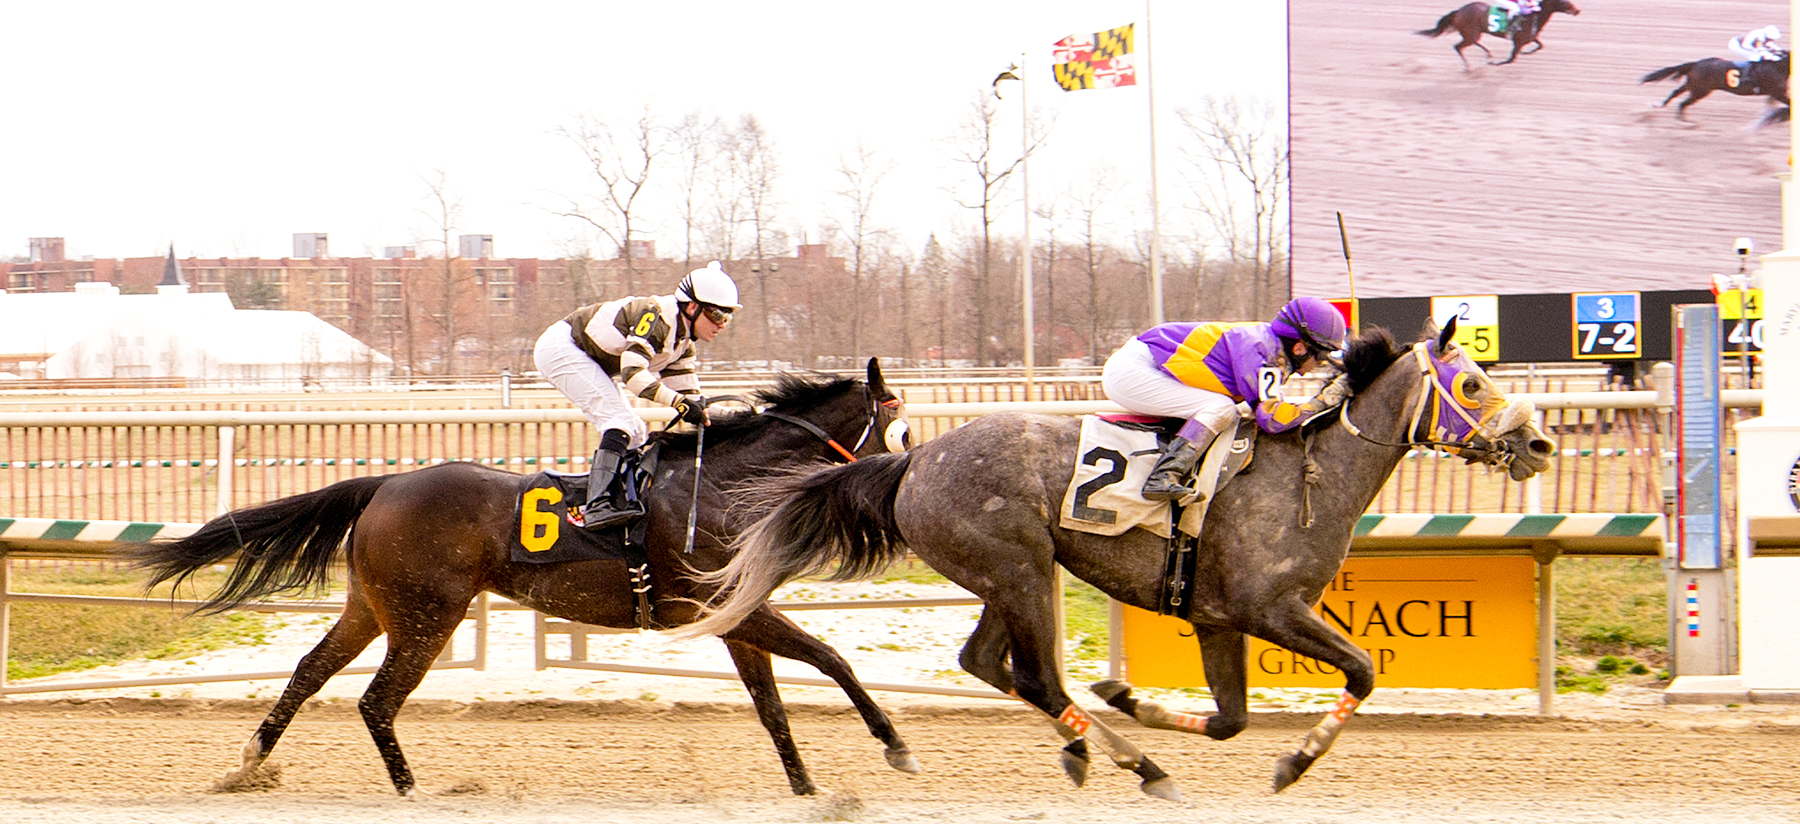 Street Miz, bred by Larry Johnson, won her second career race Feb. 25 at Laurel. Photo by Jim McCue.